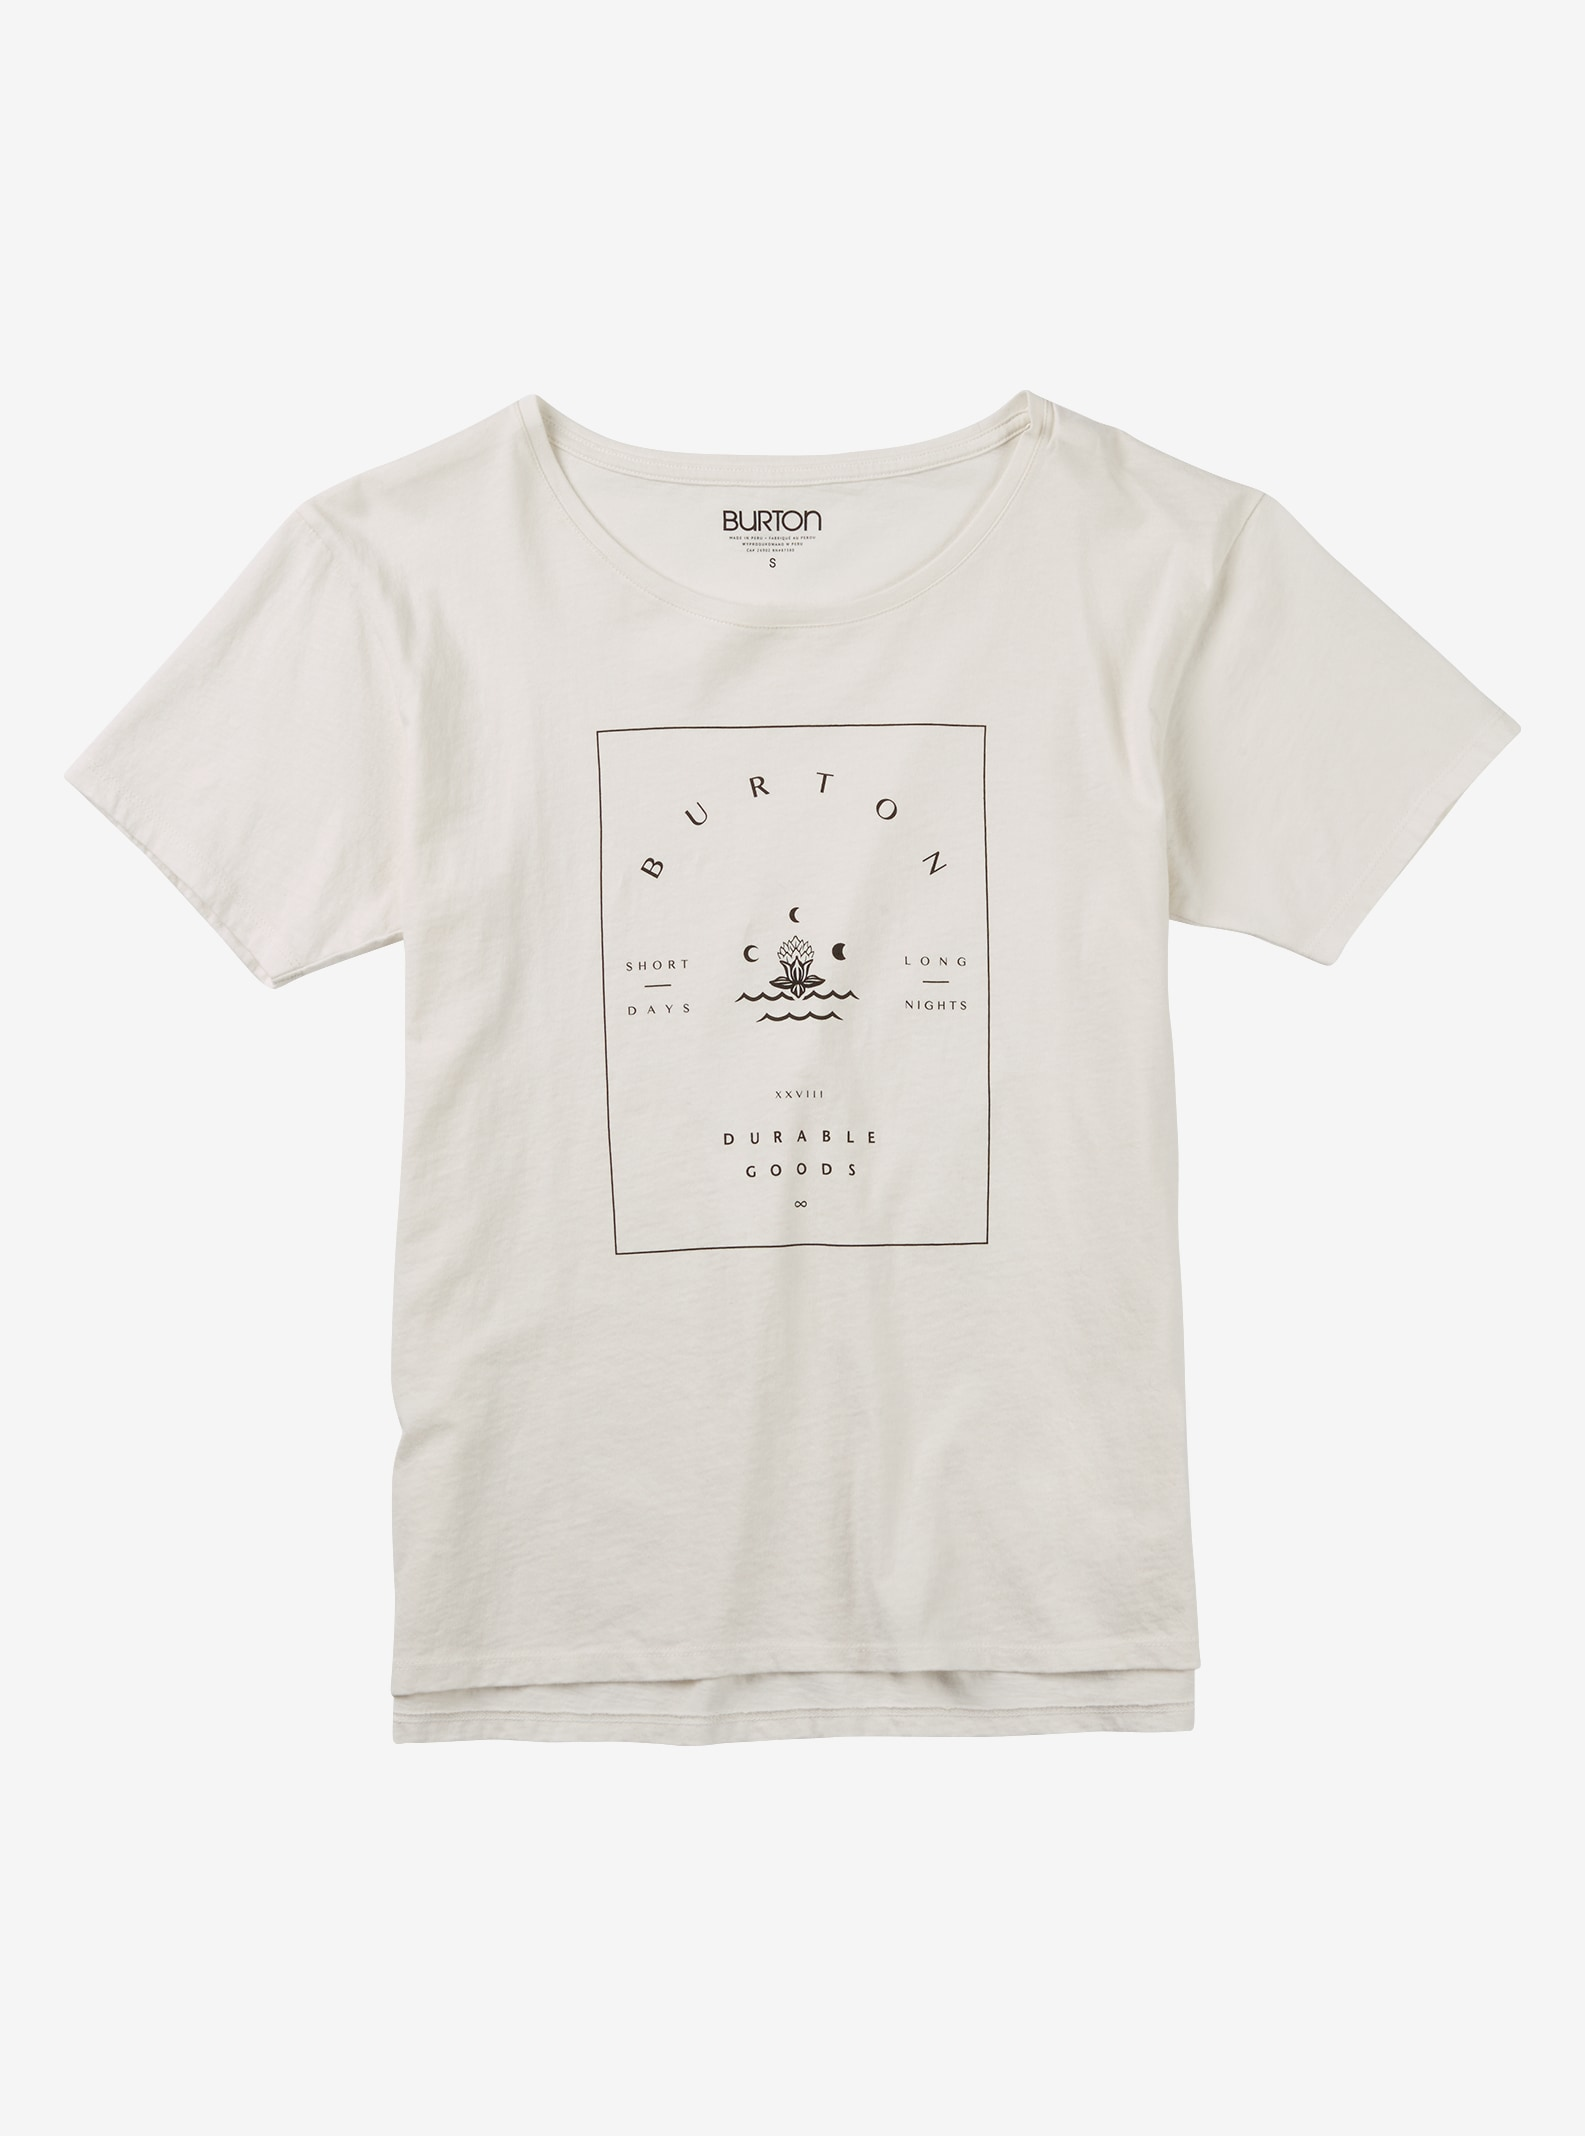 Burton Night Lily T-Shirt angezeigt in Stout White